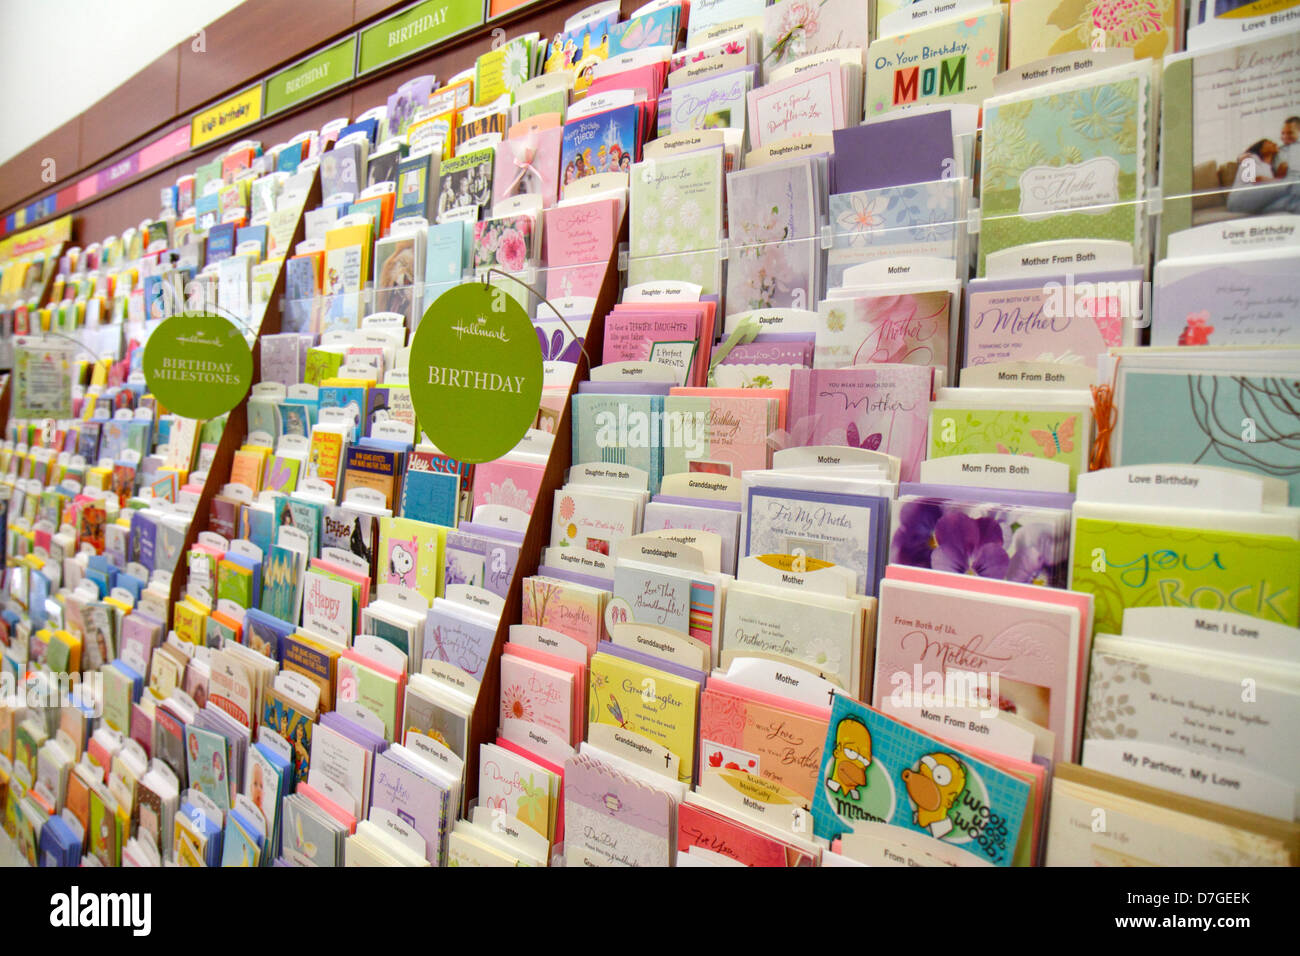 Miami Beach Florida Walgreens Pharmacy Drugstore Greeting Cards Get Well Birthday For Sale Retail Display